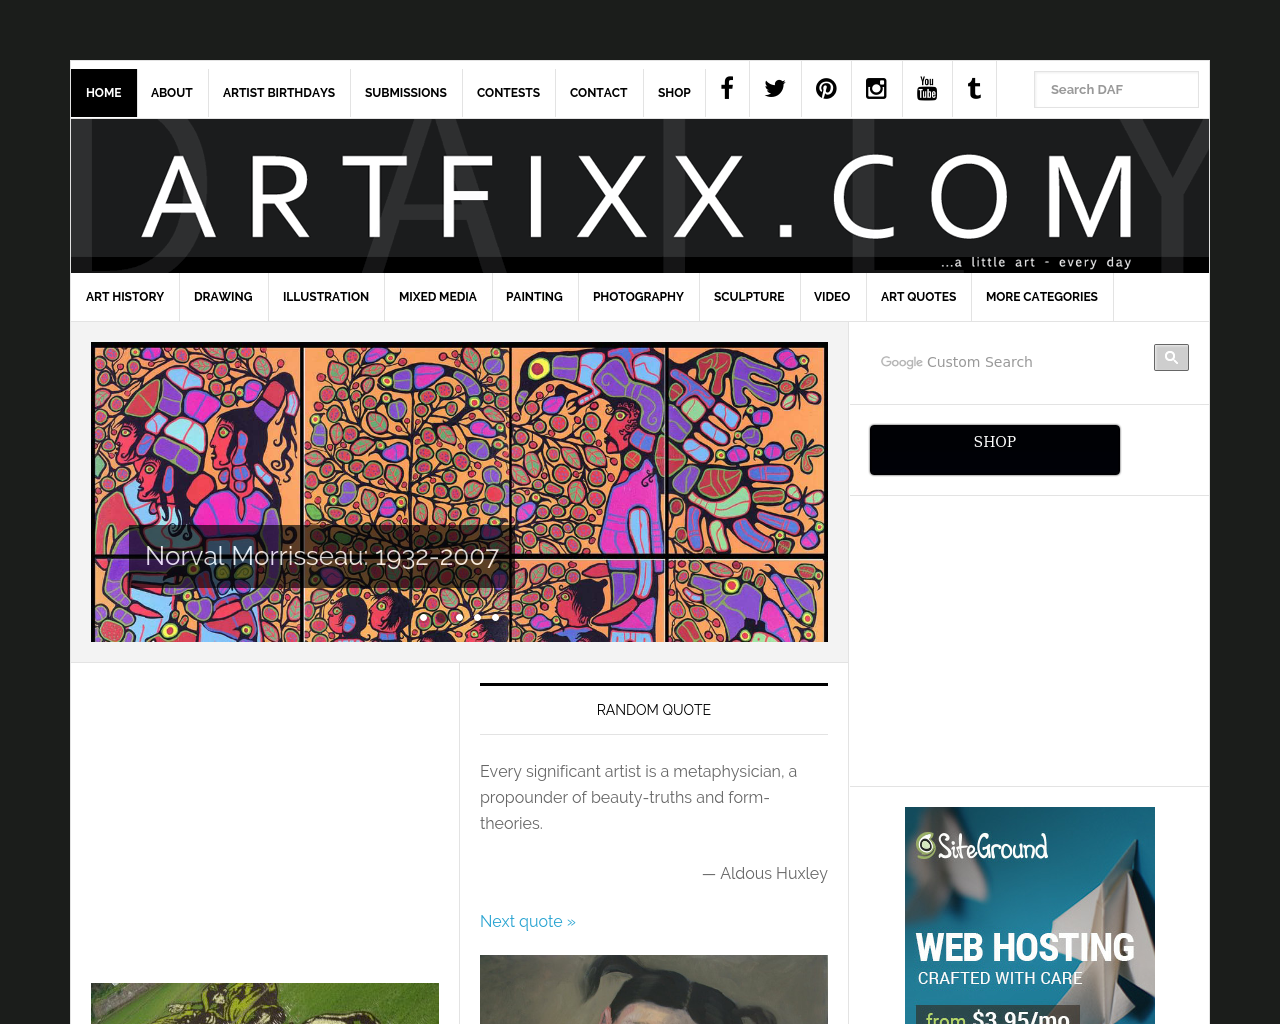 DAILY-Art-Fixx-Advertising-Reviews-Pricing